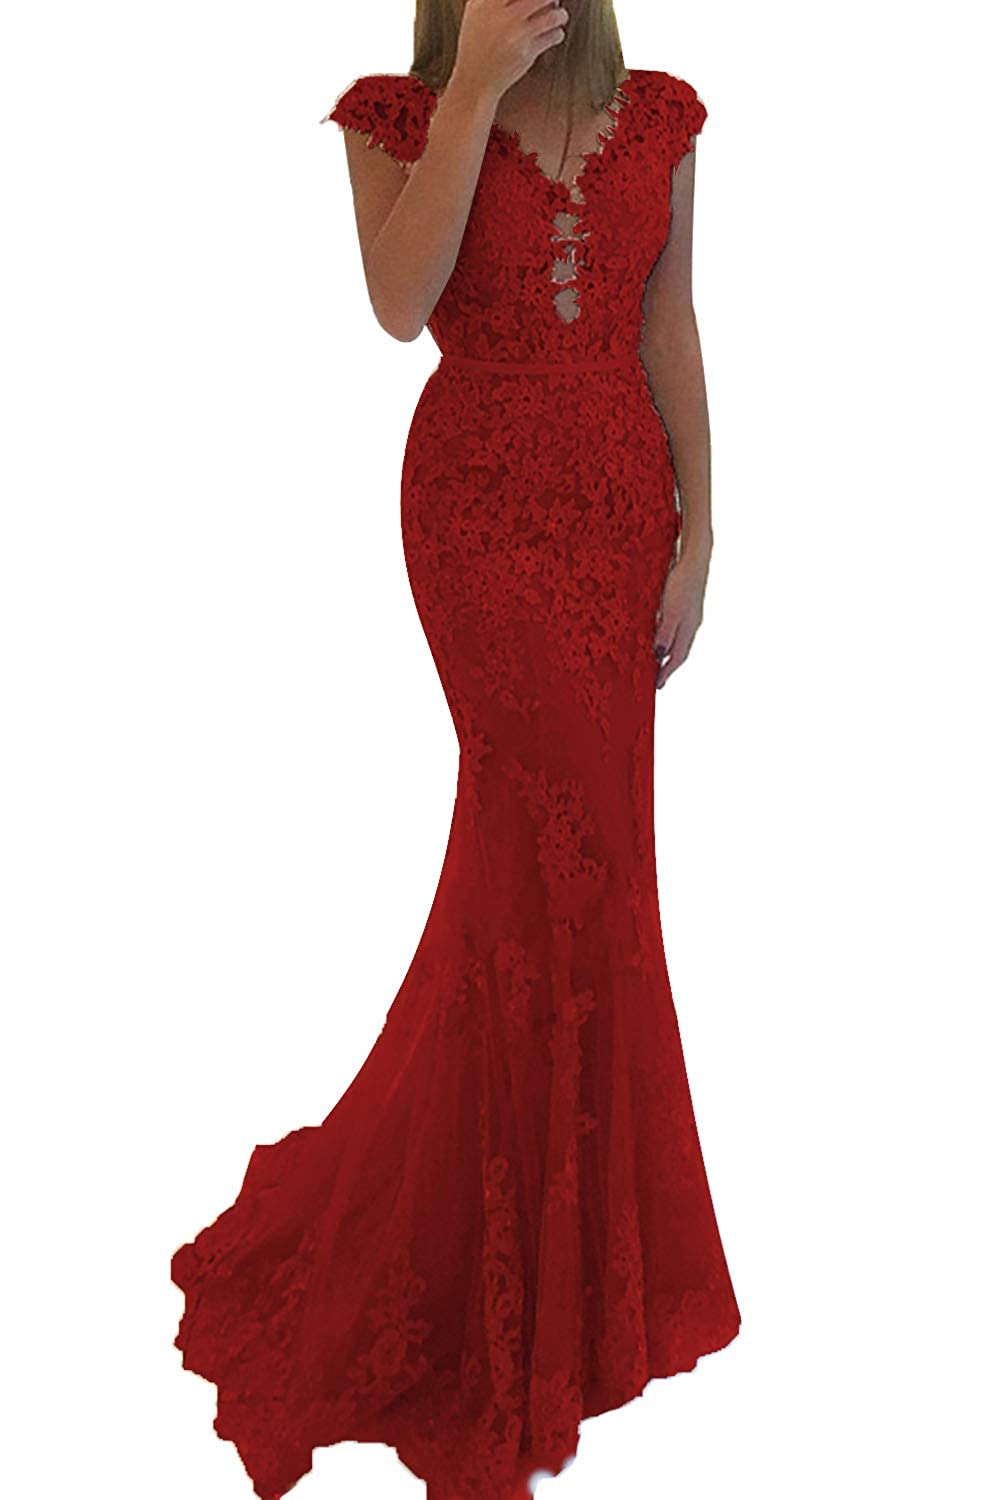 Burgundy Promworld Women's Lace Applique Beaded Mermaid Prom Dress Cap Sleeve Tulle Evening Gowns Formal